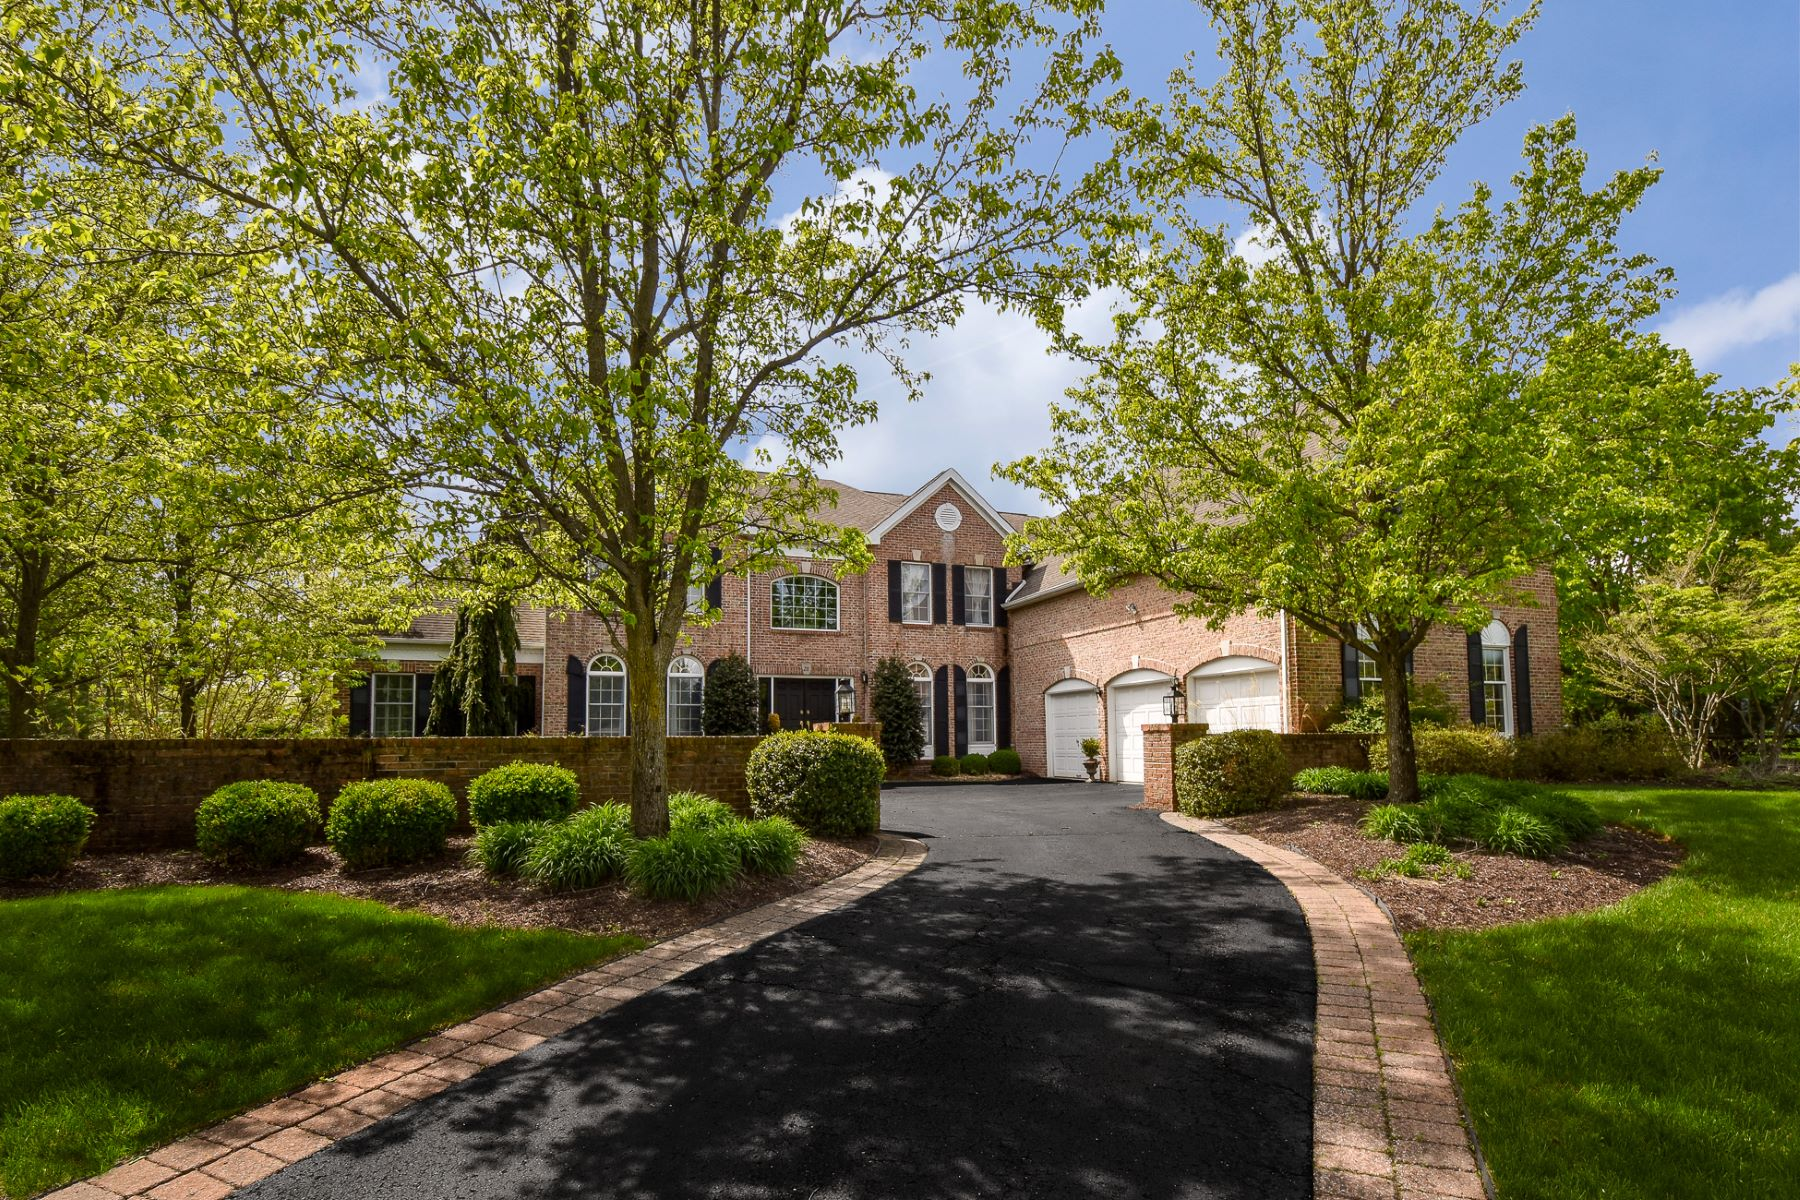 Property für Verkauf beim Nothing Short Of Exquisite in Bedens Brook Estates 28 Green Meadow Road, Skillman, New Jersey 08558 Vereinigte Staaten